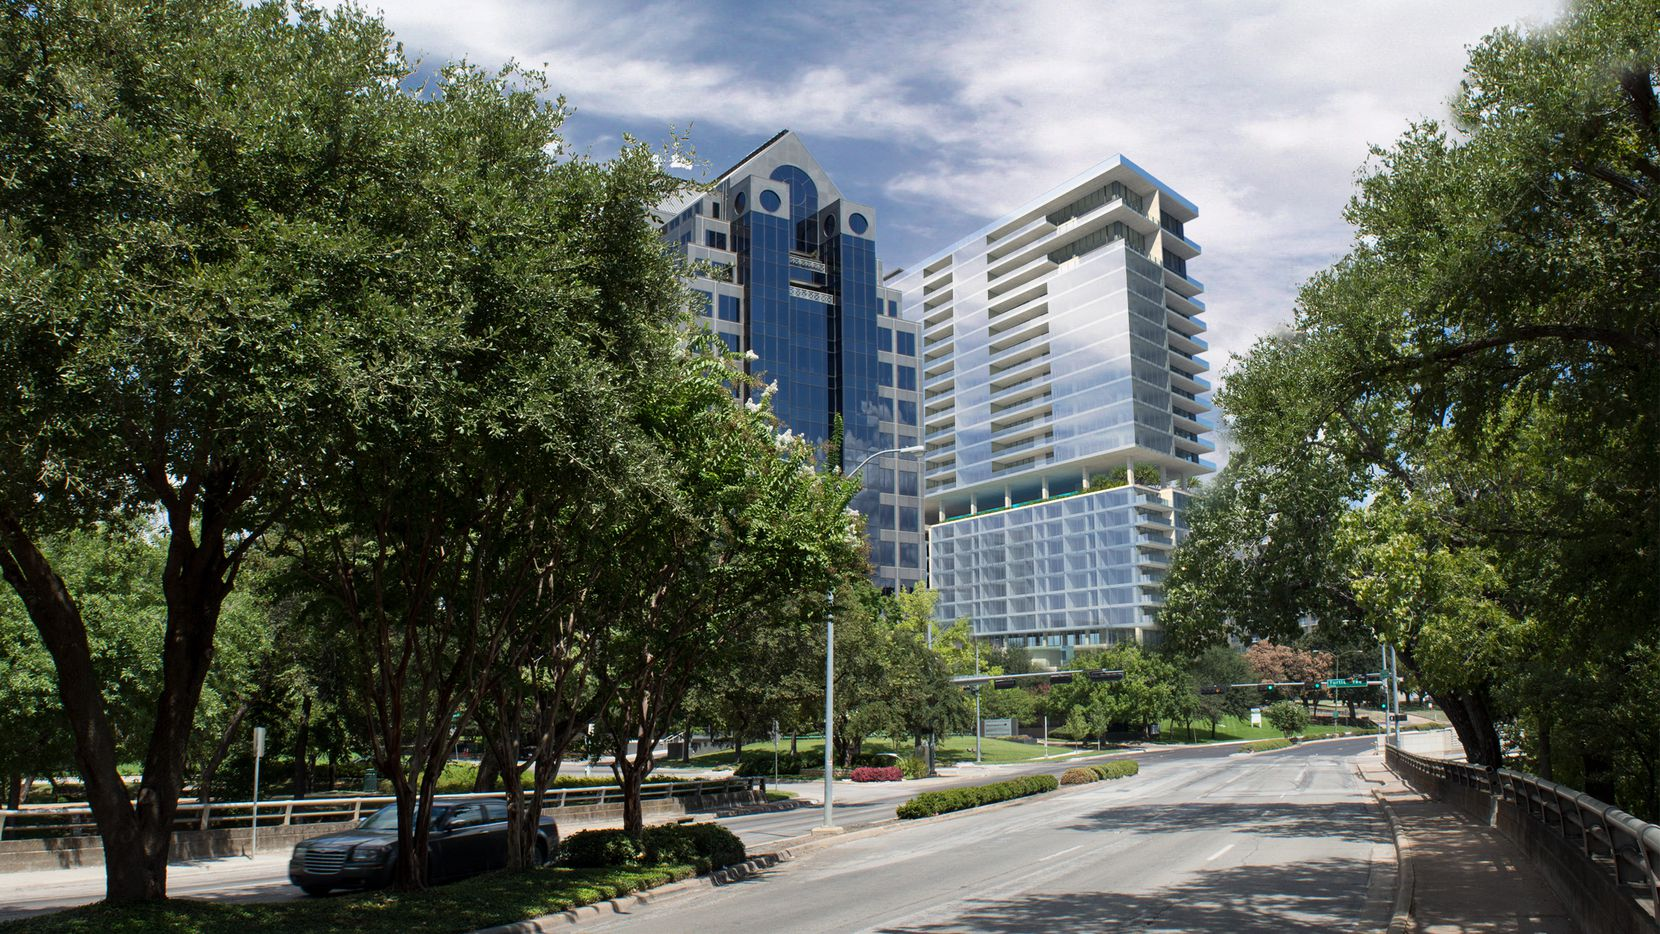 A 25-story Mandarin Oriental Hotel and condo tower is planned on the site.